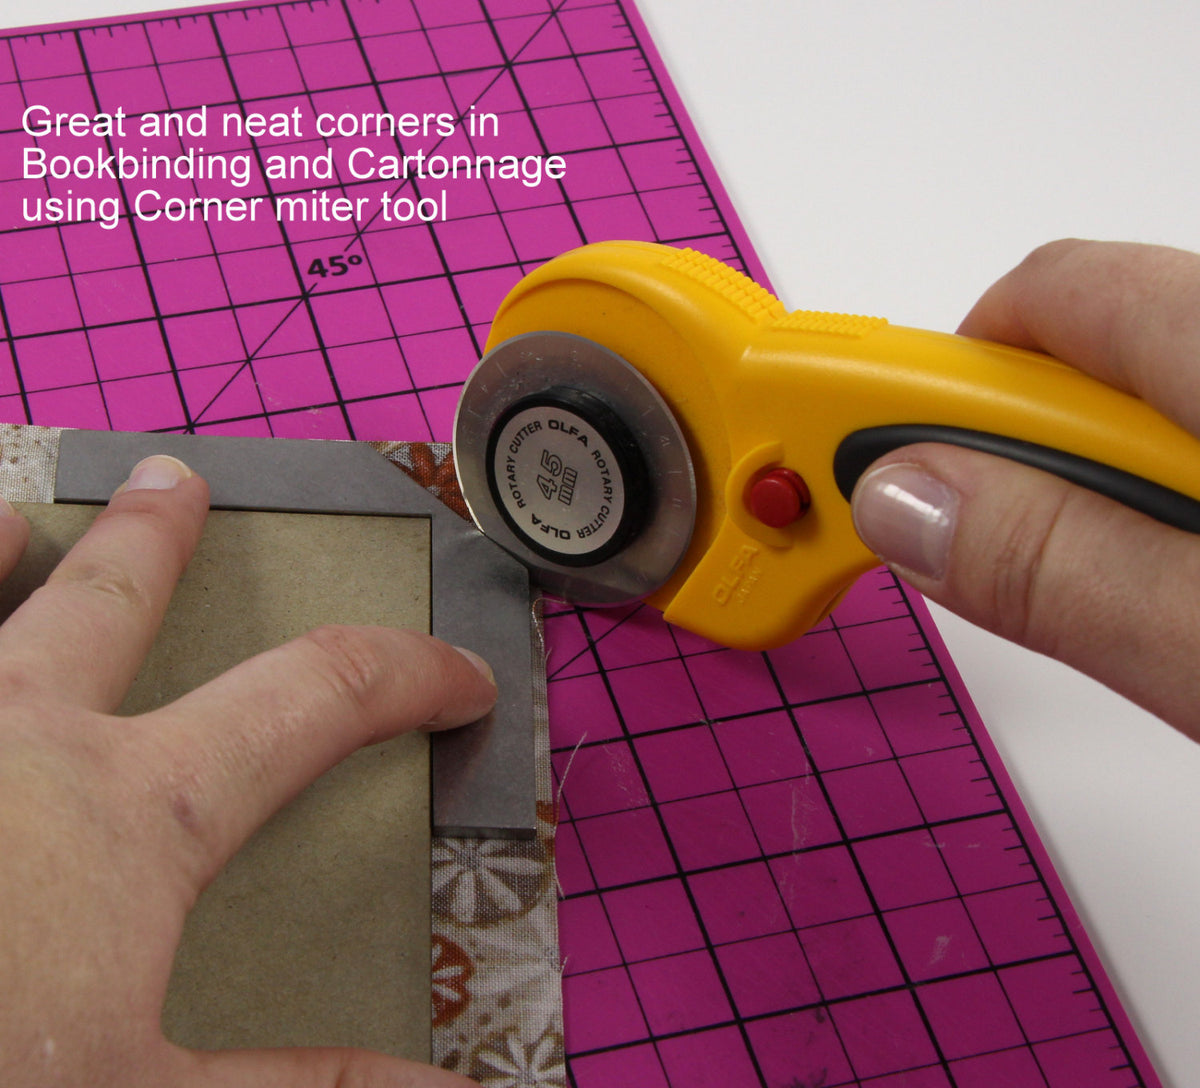 Corner miter tool, stainless steel corner tool for cartonnage, bookbinding and scrapbook - Colorway Arts